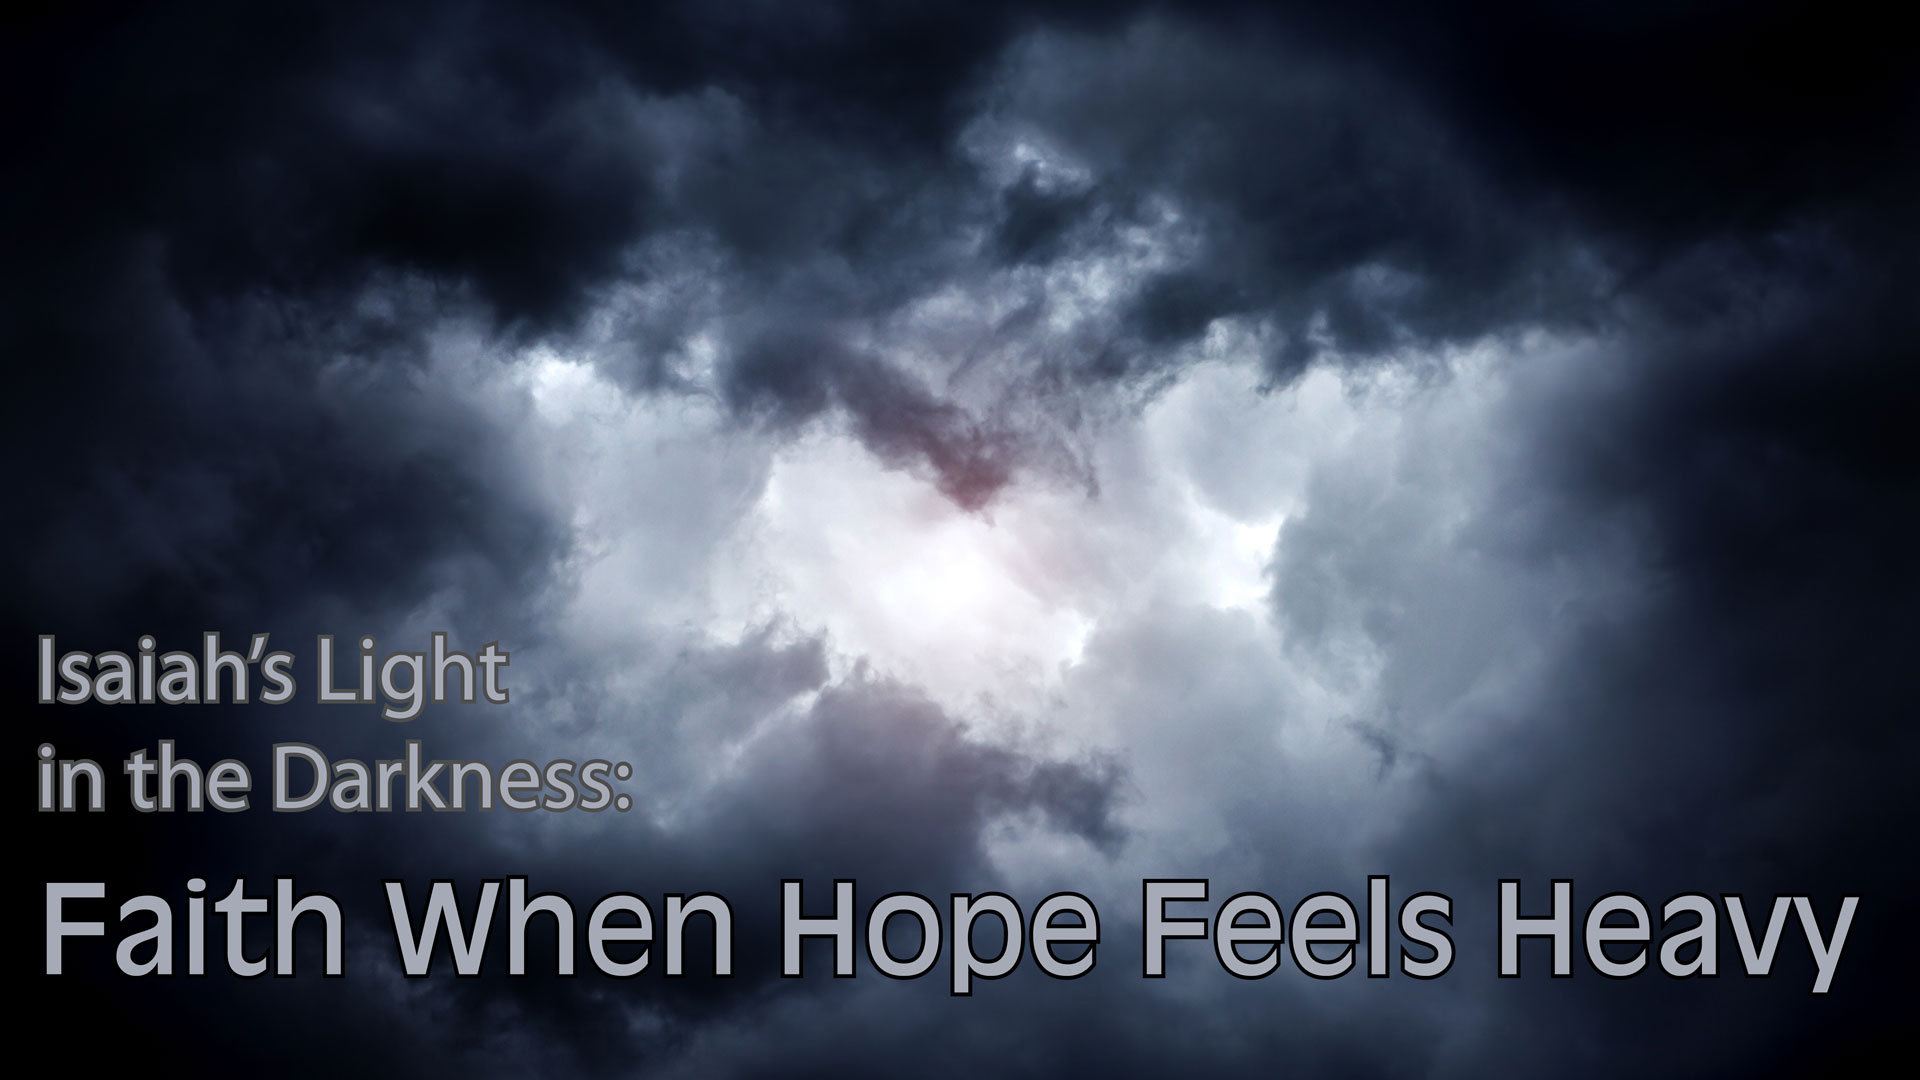 Isaiah's Light in the Darkness: 